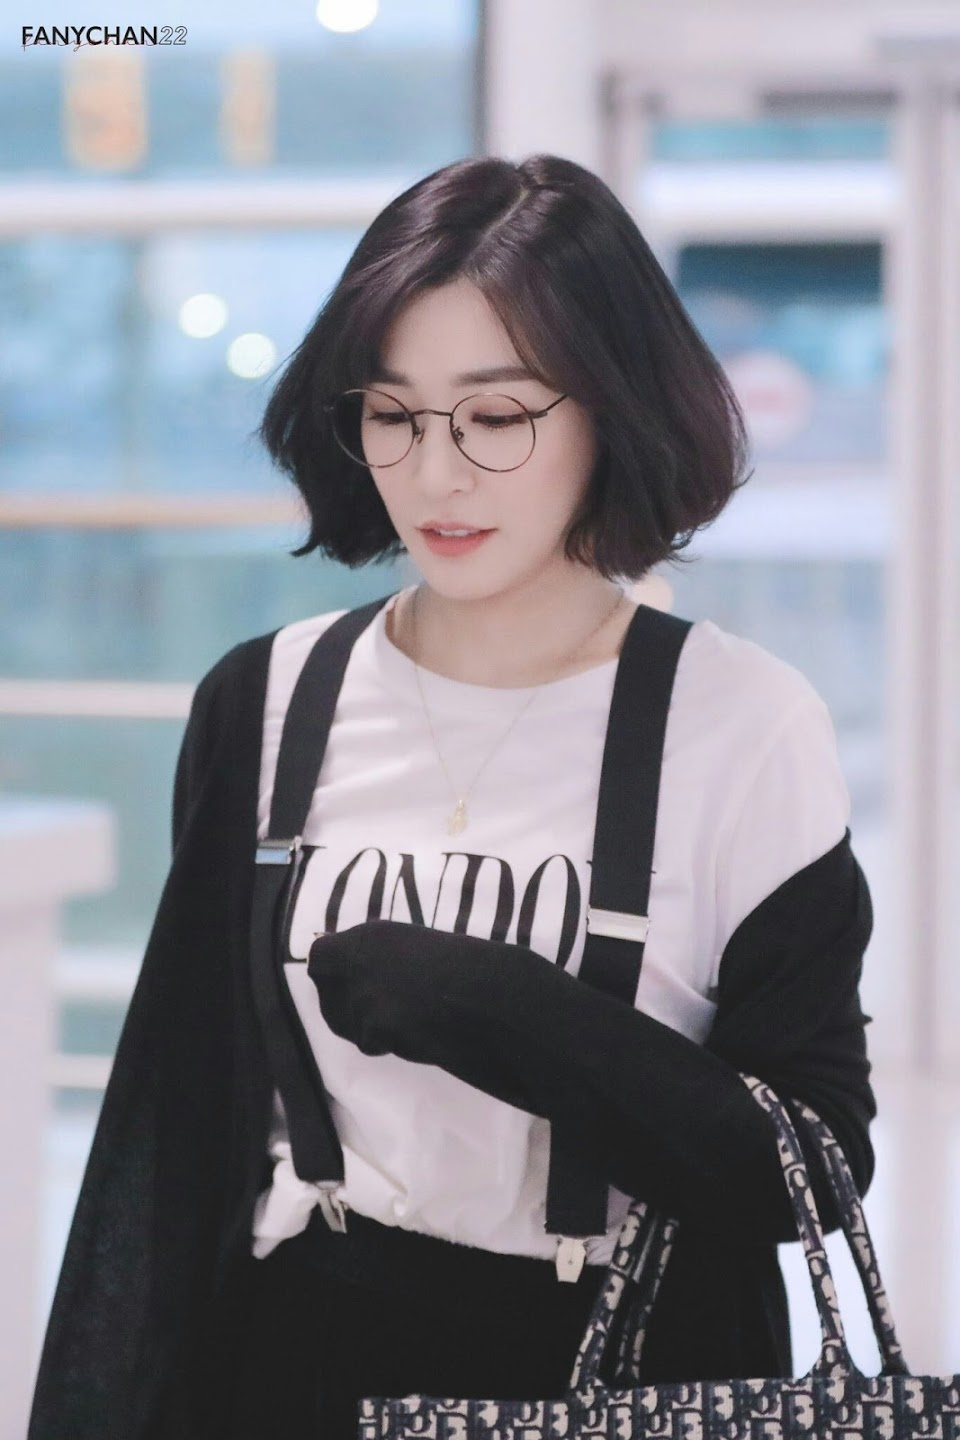 tiffany casual 43